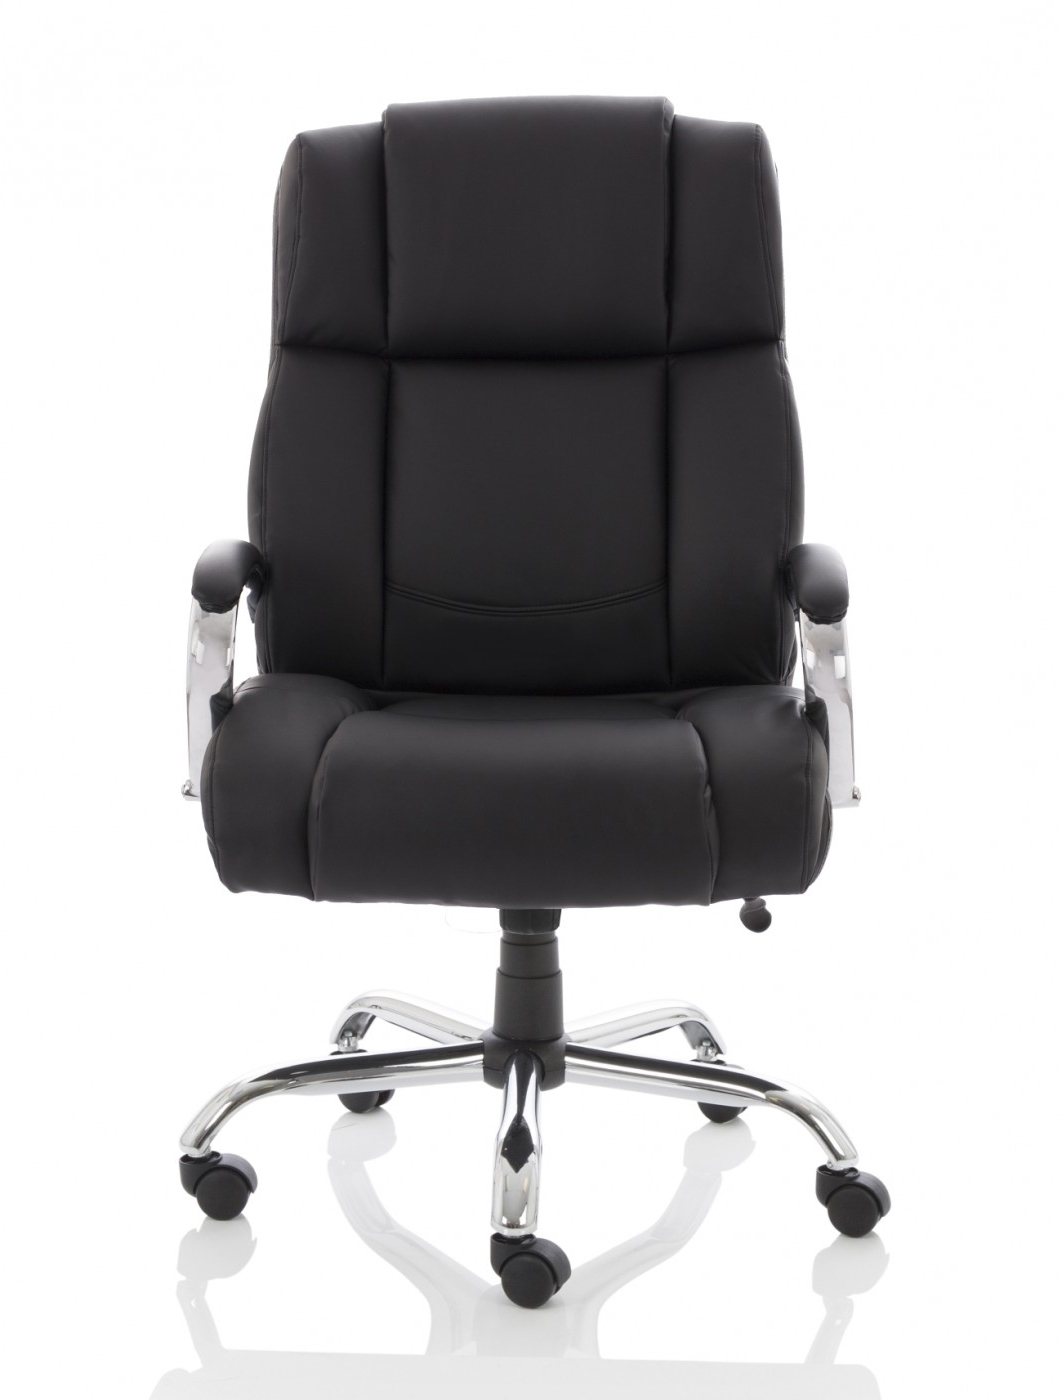 Chair : High Back Executive Leather Office Chair Lumbar Support Regarding Most Up To Date Executive Office Chairs With Back Support (View 16 of 20)